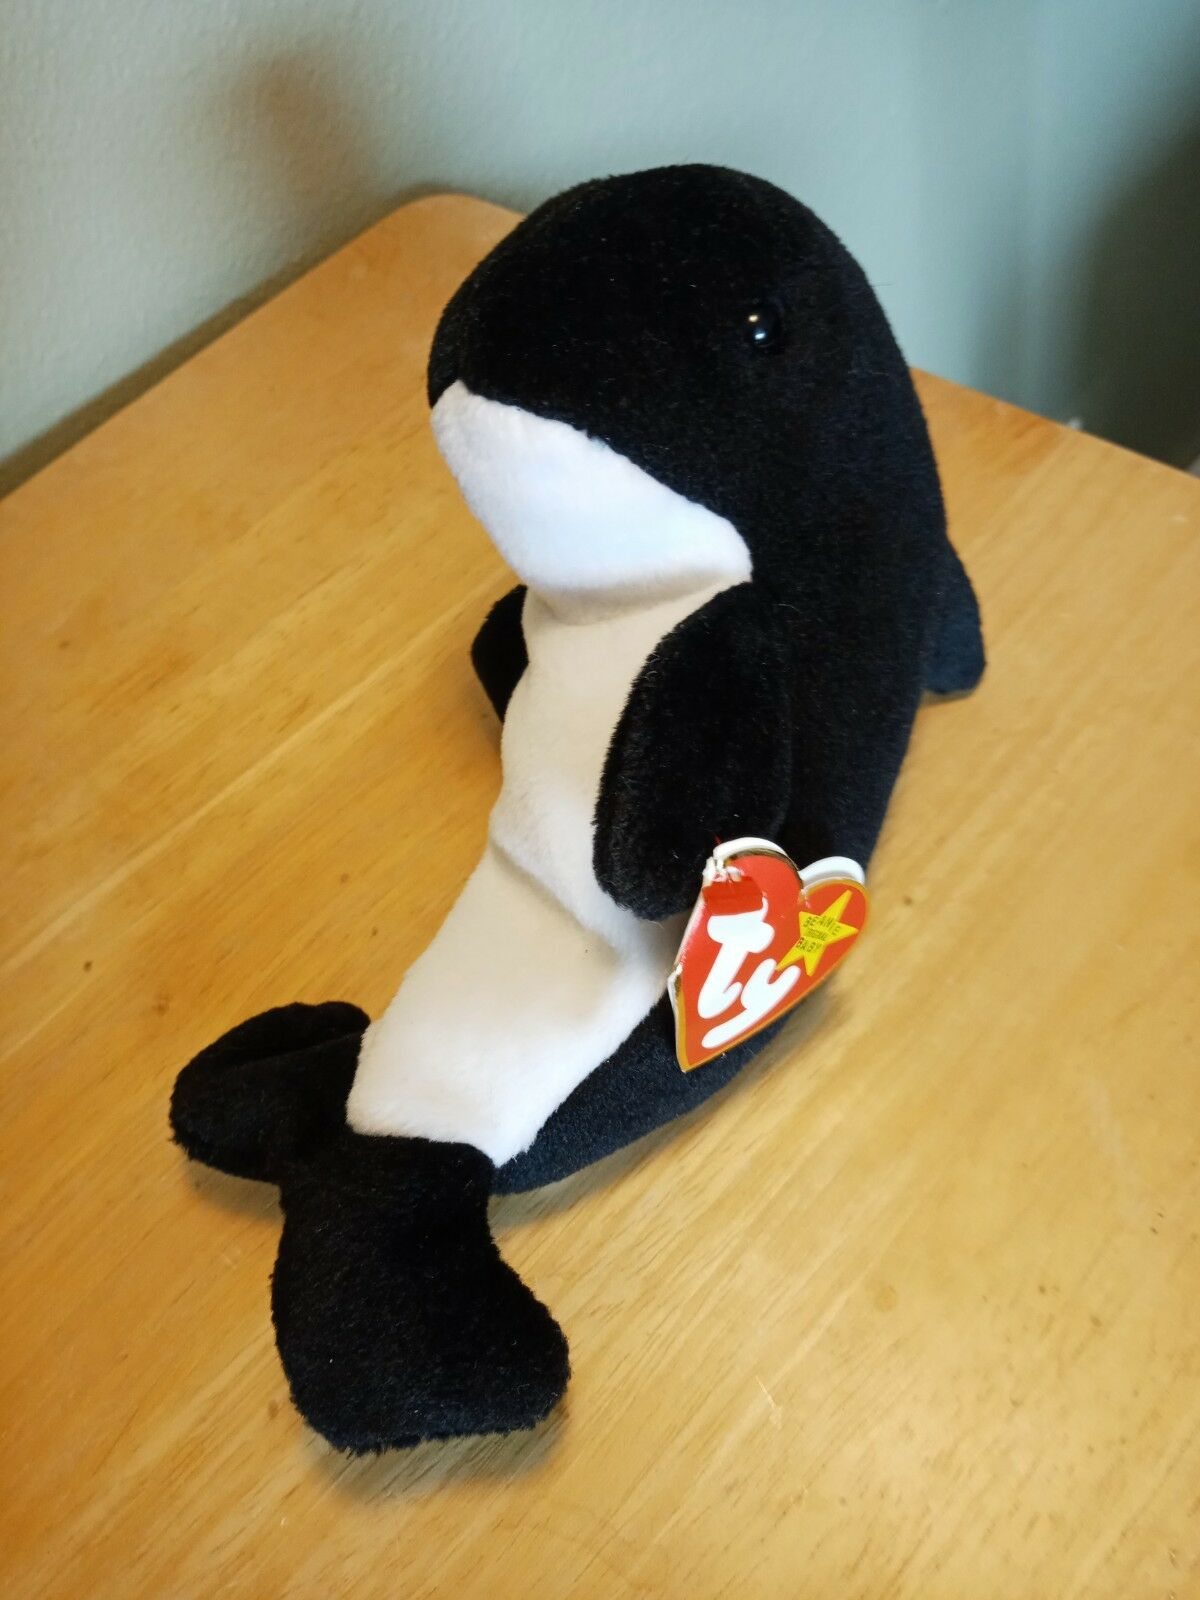 82ed1deee84 Ty Beanie Baby Waves the Whale (1996) With Error Echo Tush And Hang ...